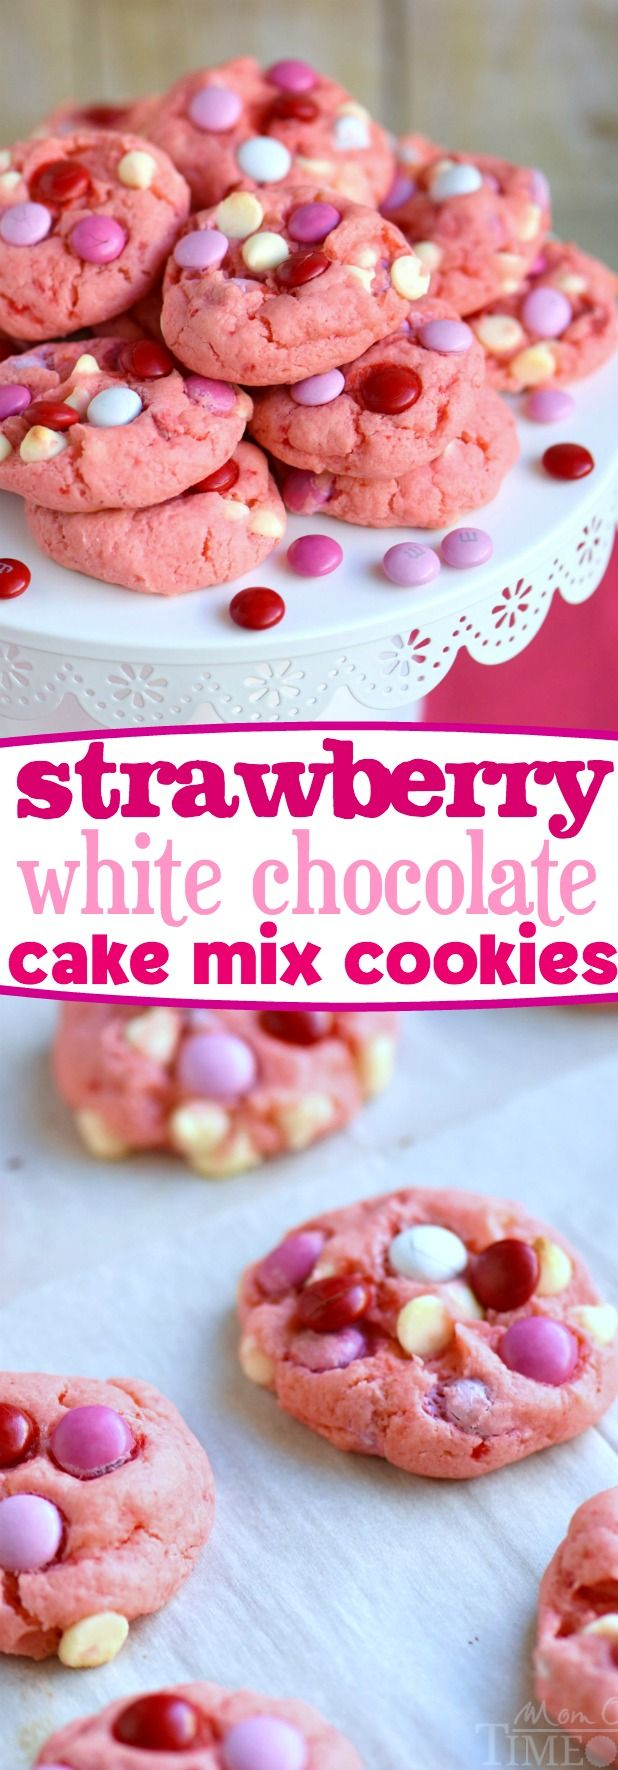 Super moist and delicious Strawberry and White Chocolate Cake Mix Cookies! This recipe uses a SECRET INGREDIENT for the moistest cookies EVER! So pretty and pink! Perfect for Valentine's Day, baby showers and more! // Mom On Timeout: